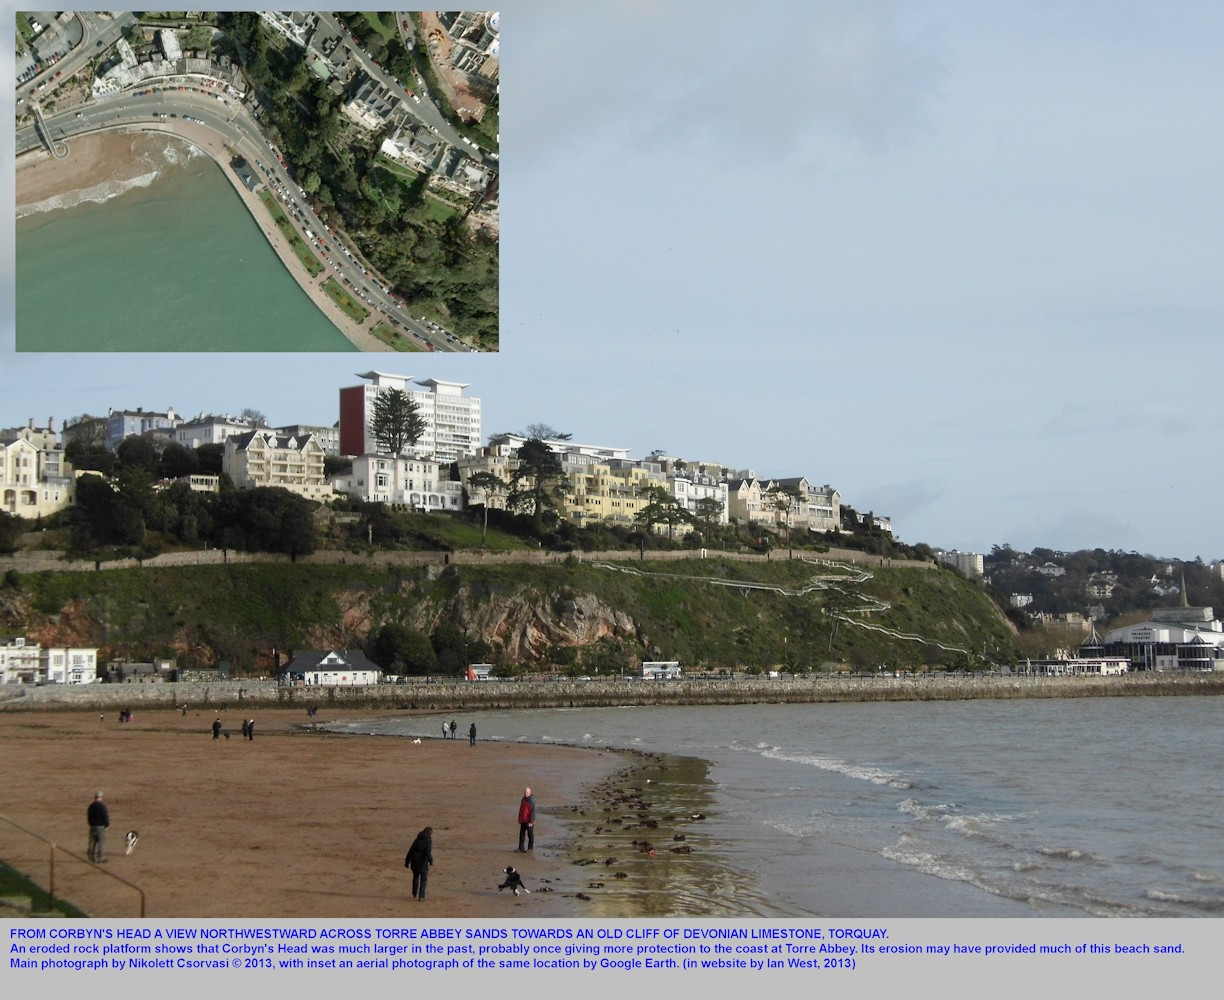 A view from Corbyn's Head across Torre Abbey Sands, Torquay, Devon, 2013